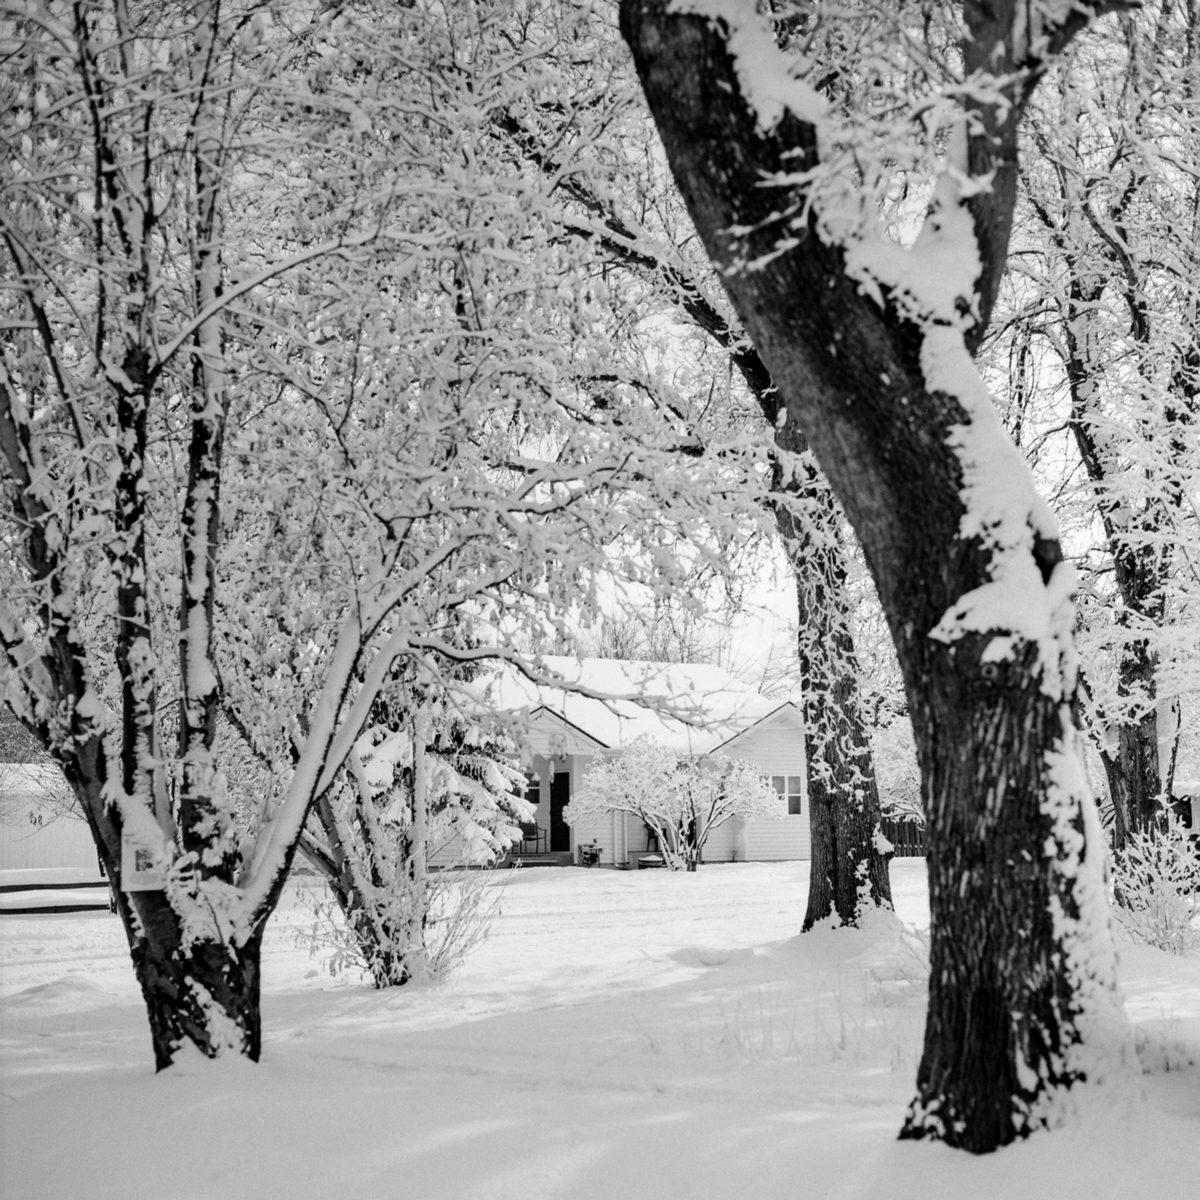 ILFORD PANF Plus film in Montanta Snow by Scott Young